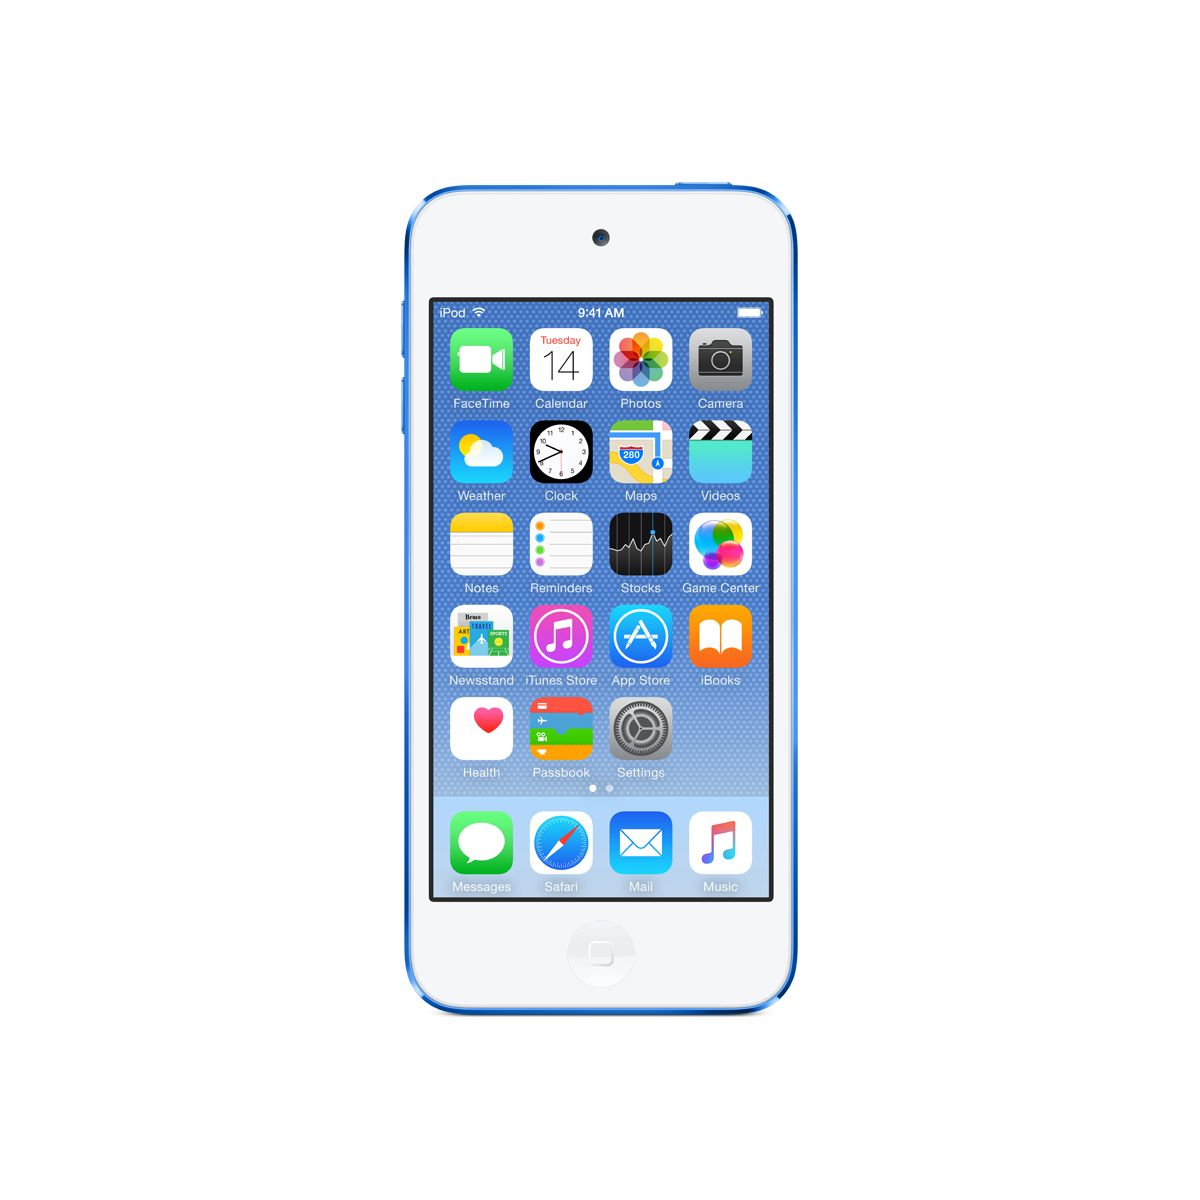 Apple ipod touch 32 go bleu - livraison offerte : code chronoff (photo)